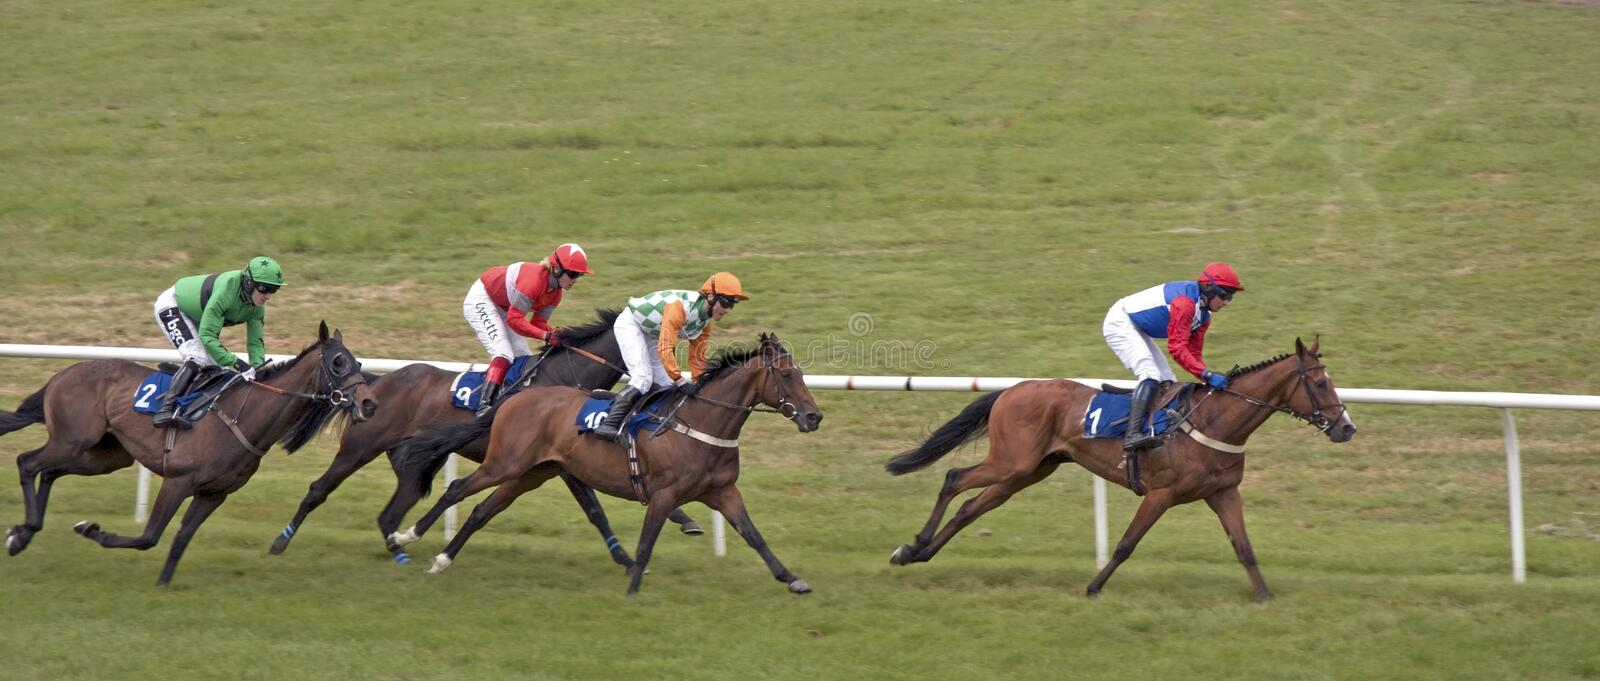 Horse Race Stratford England royalty free stock images